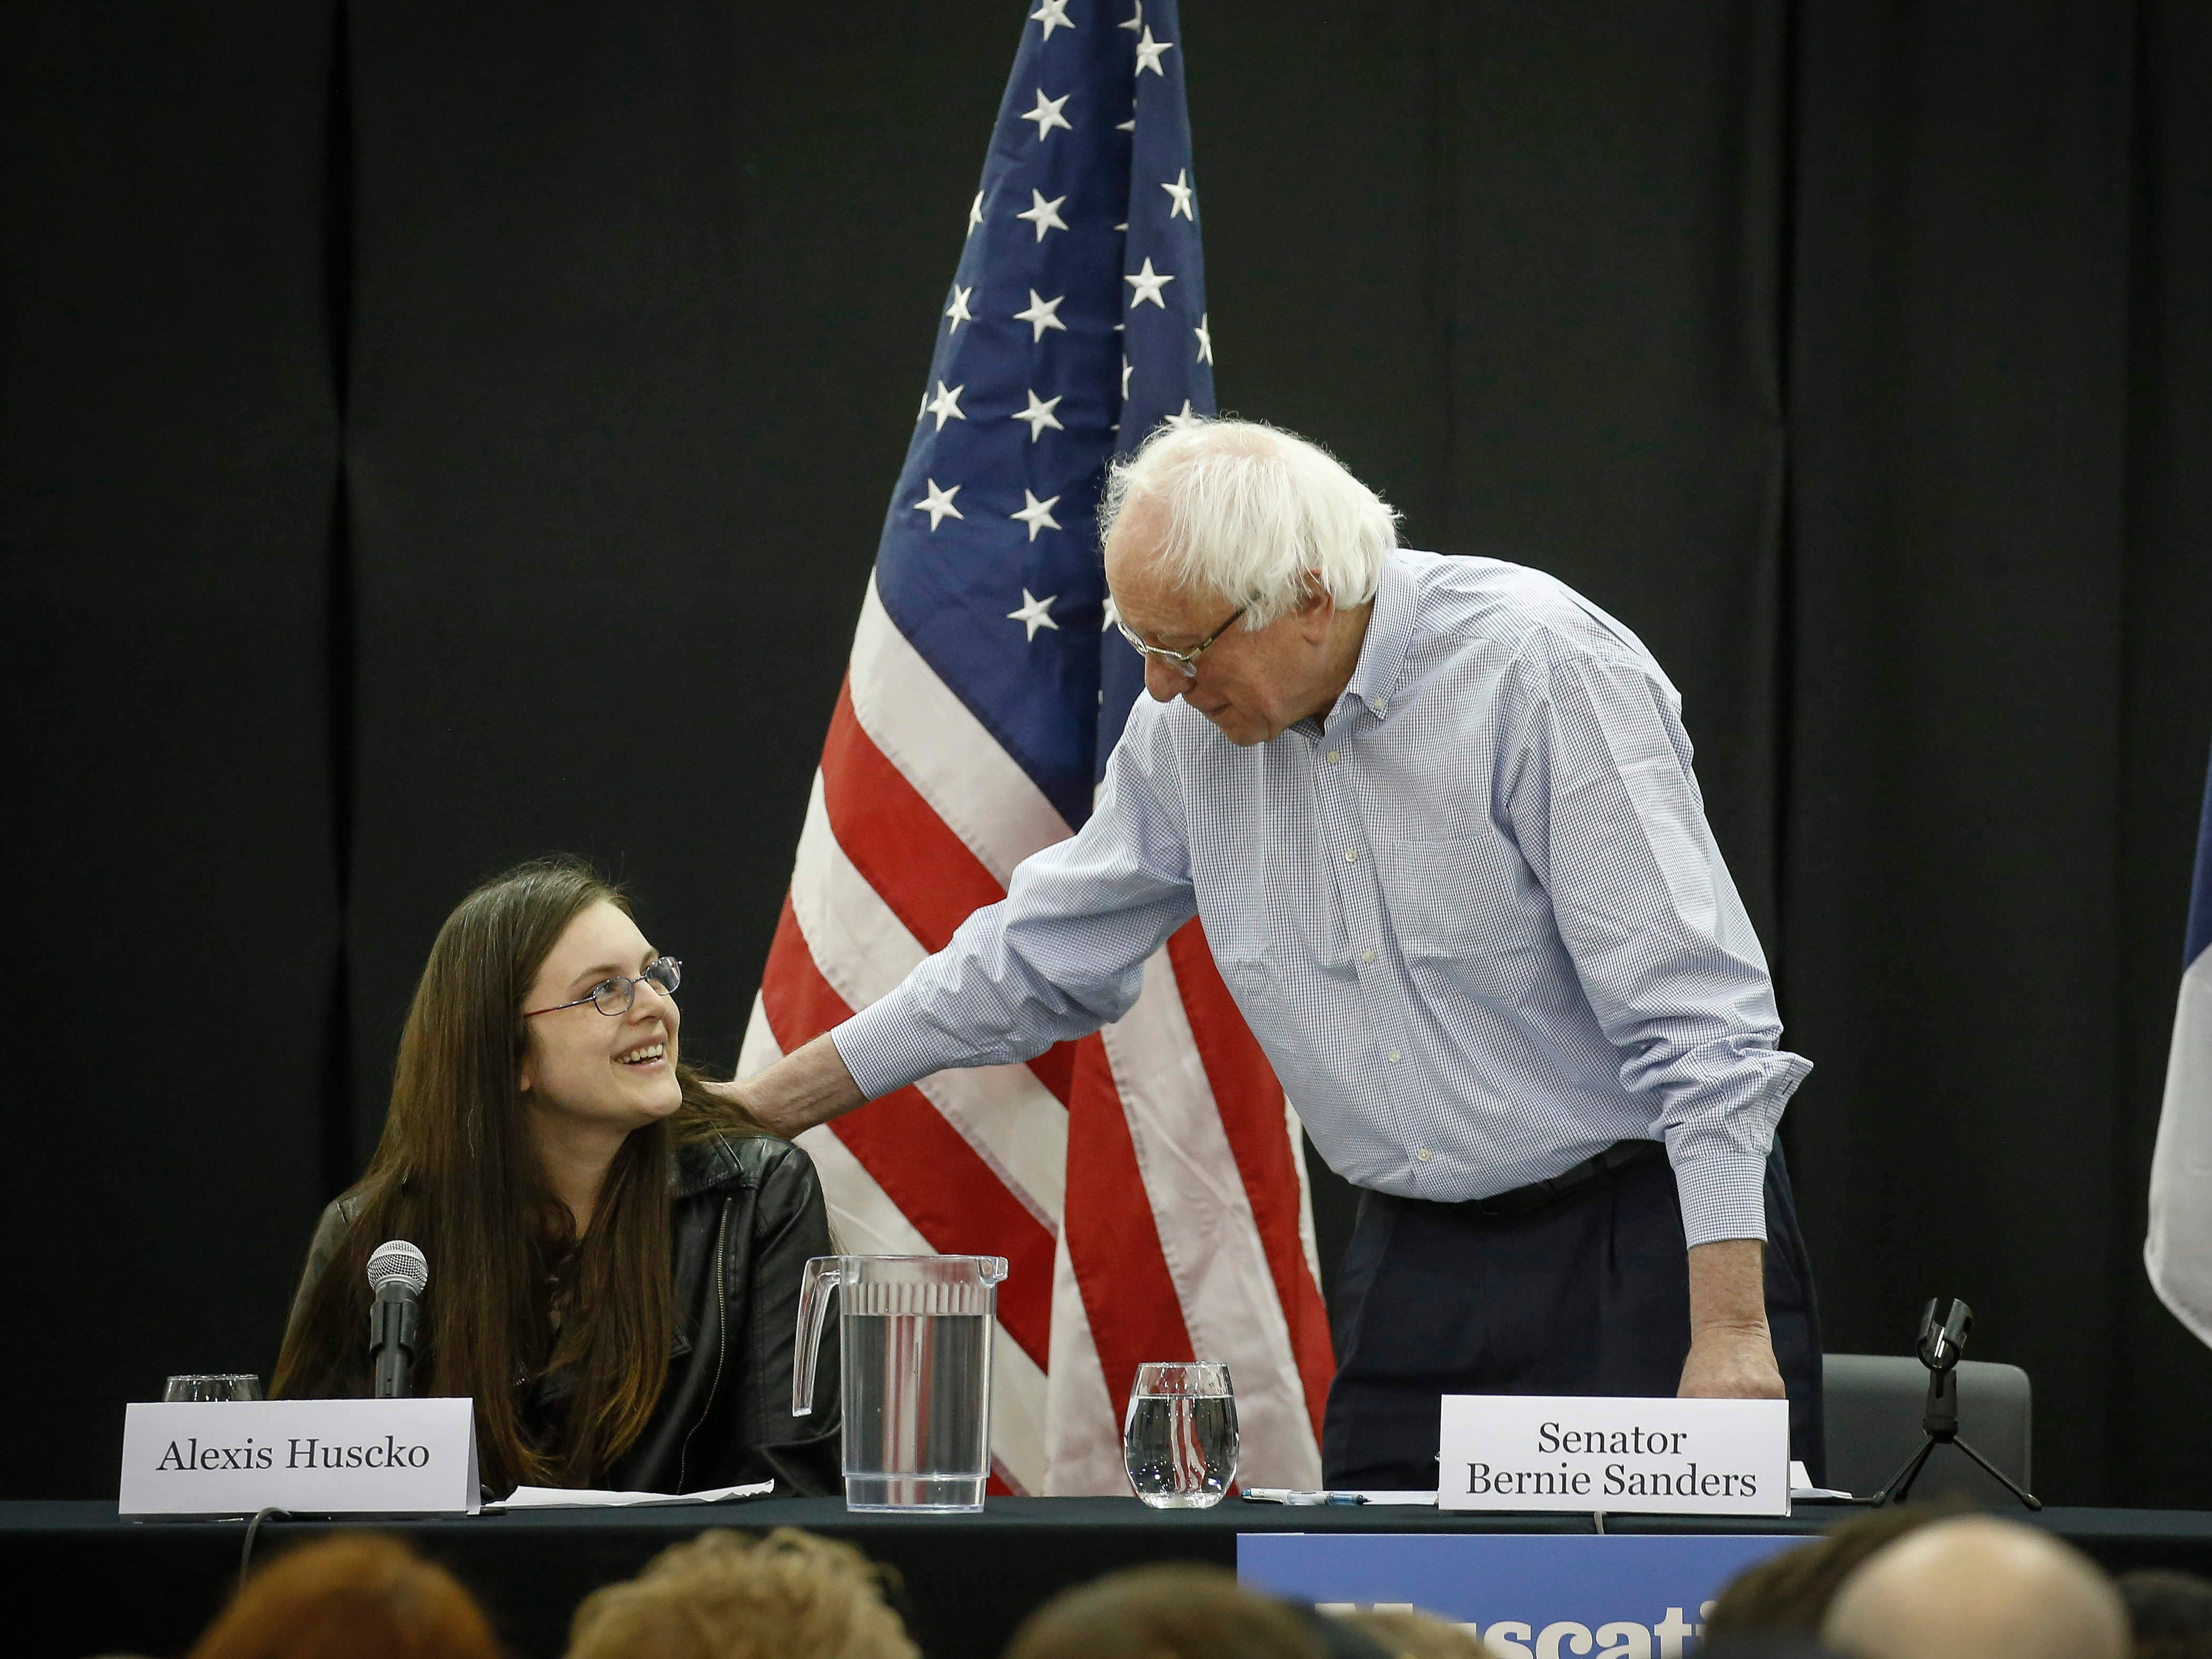 Democratic presidential candidate hopeful and U.S. Sen. Bernie Sanders reaches over to comfort Alexis Huseko of Muscatine as she shares a personal story of battling mental health issues during a town hall meeting at West Middle School in Muscatine on Saturday, April 6, 2019.